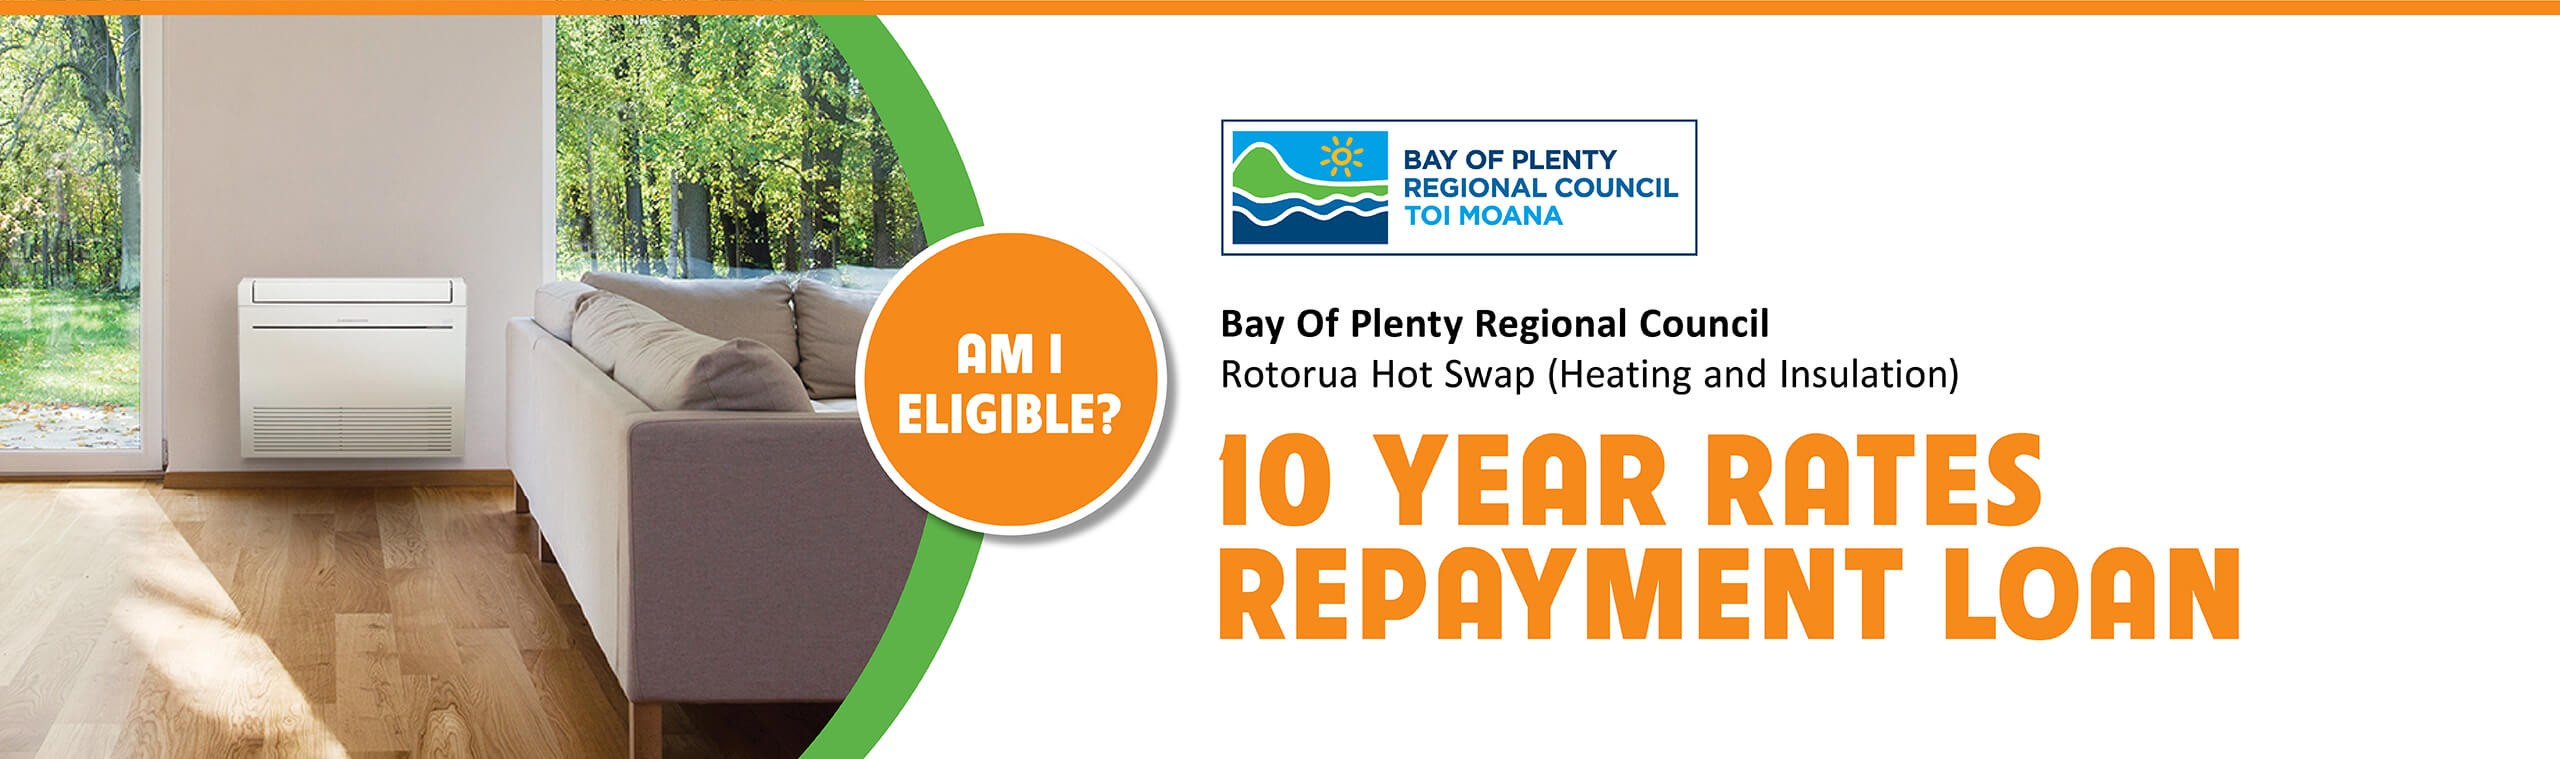 Rotorua_Hot_Swap_10_Year_Rates_Repayment_Loan_Home_Page_Banner_Final.jpg